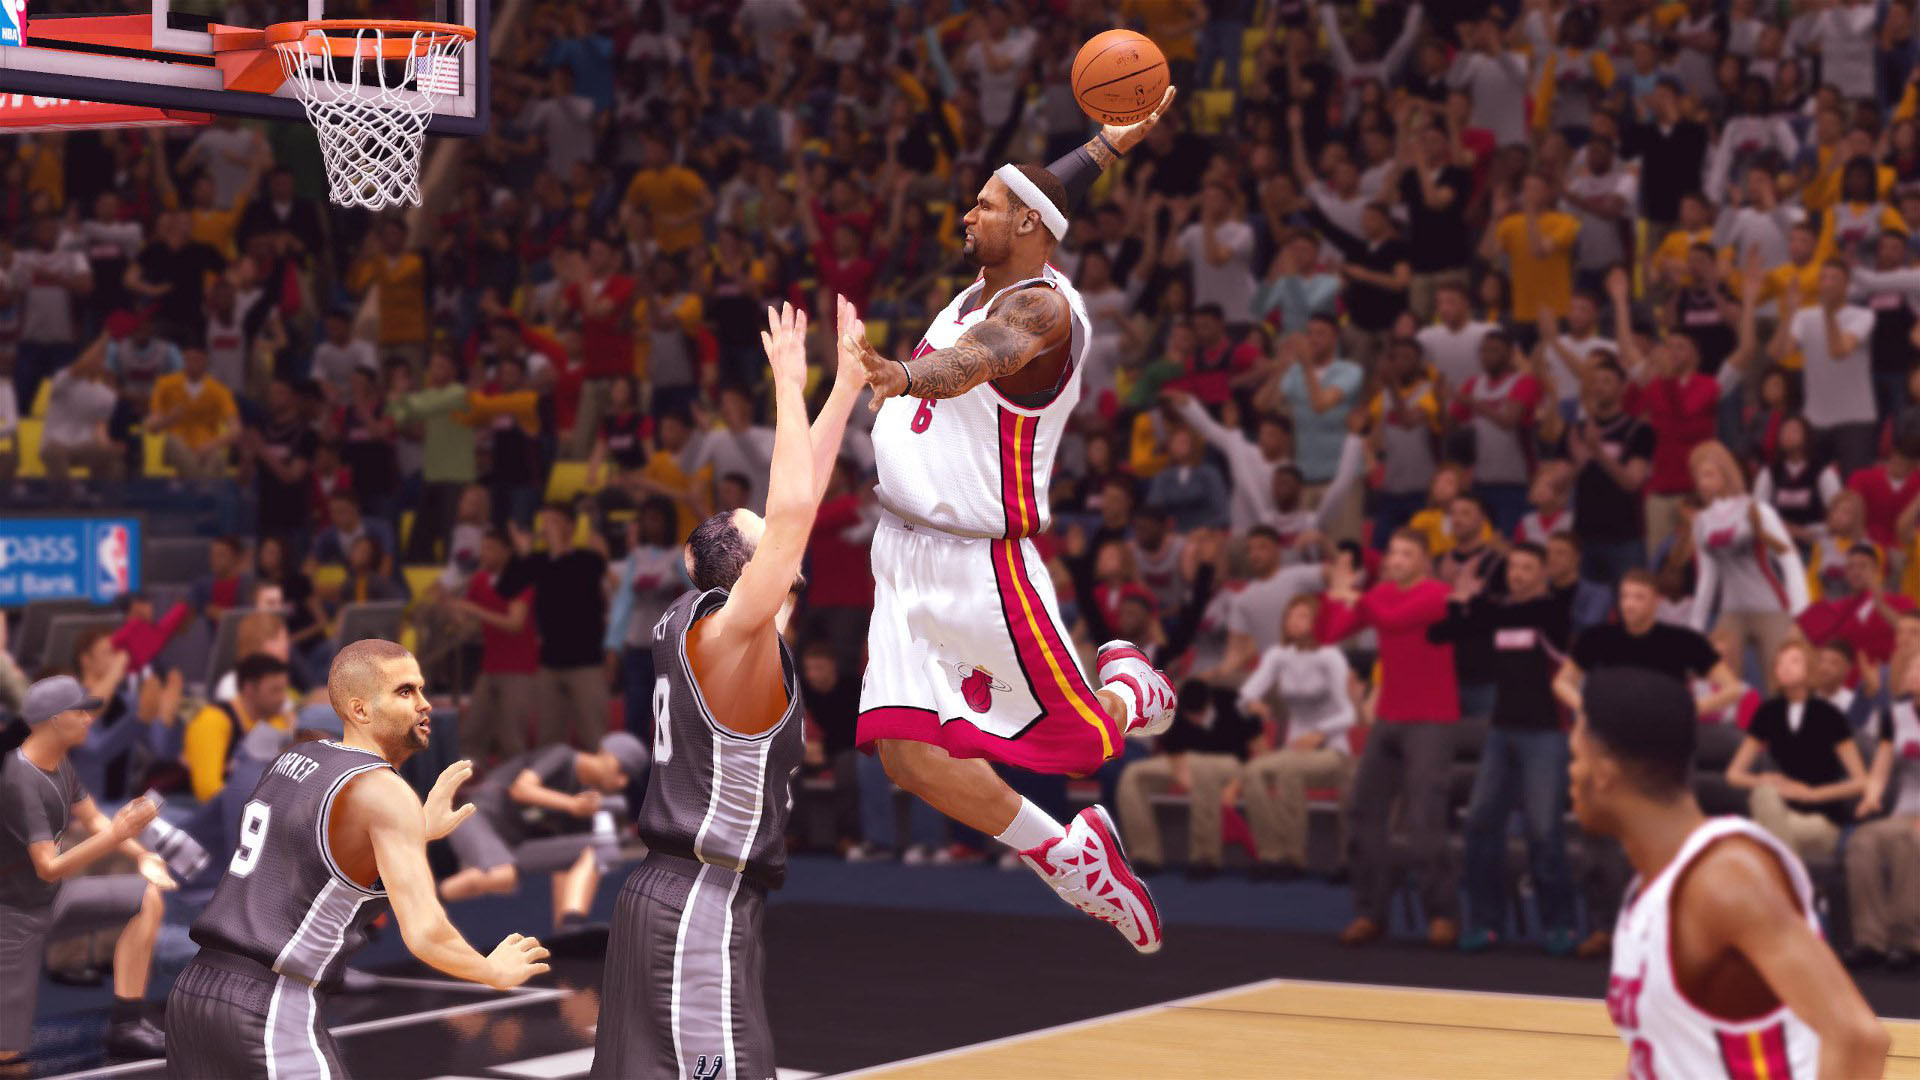 1920x1080 LeBron James dunking, Miami Heat, NBA 2K14  wallpaper